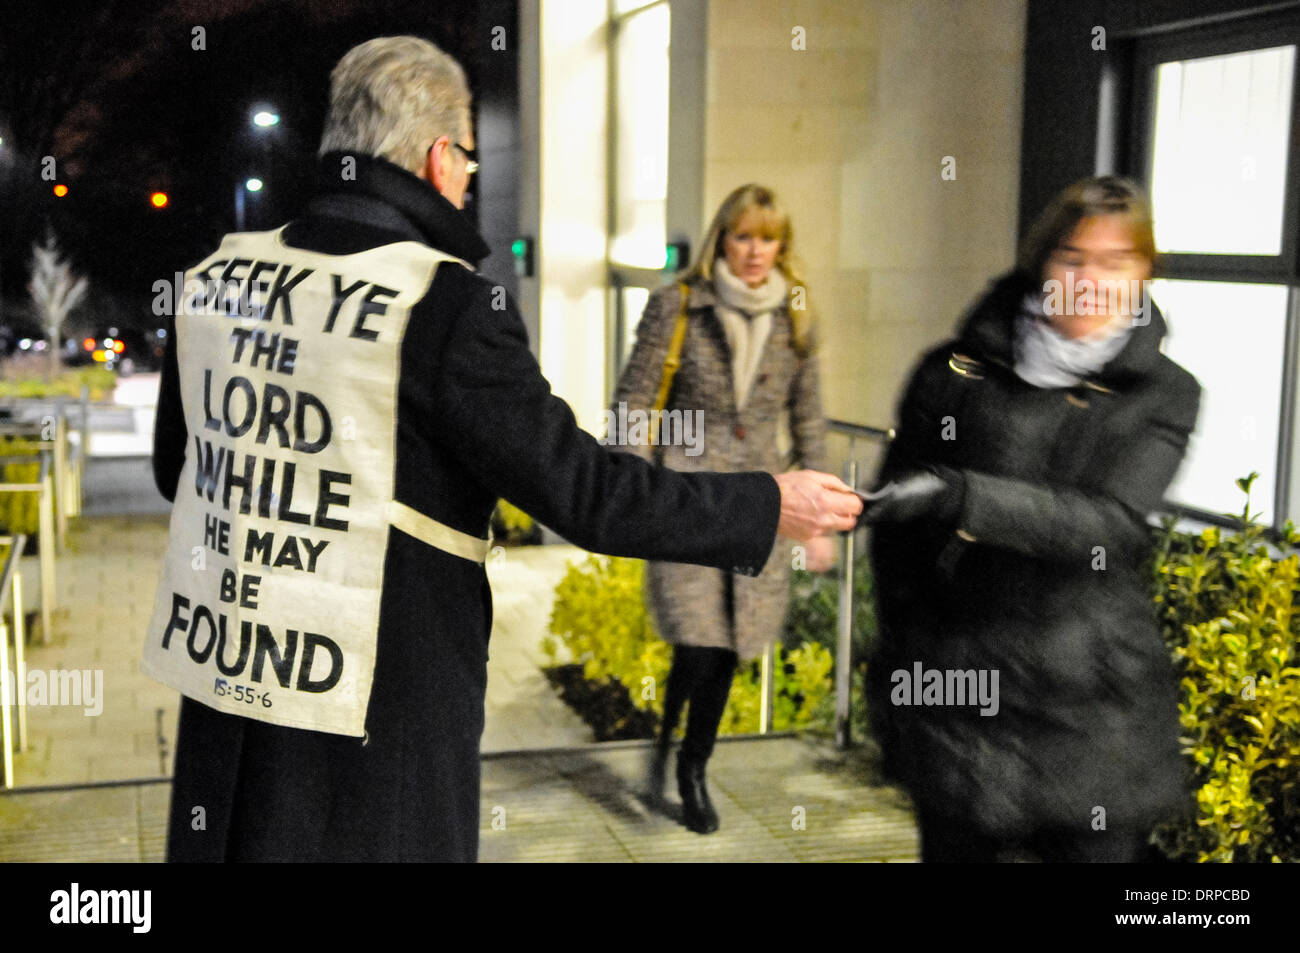 Newtownabbey, Northern Ireland. 30 Jan 2014  - A man wearing a bib with a bible verse, hands out gospel tracts to audience members going to see a play which they see as 'blasphemous'. Credit:  Stephen Barnes/Alamy Live News Stock Photo